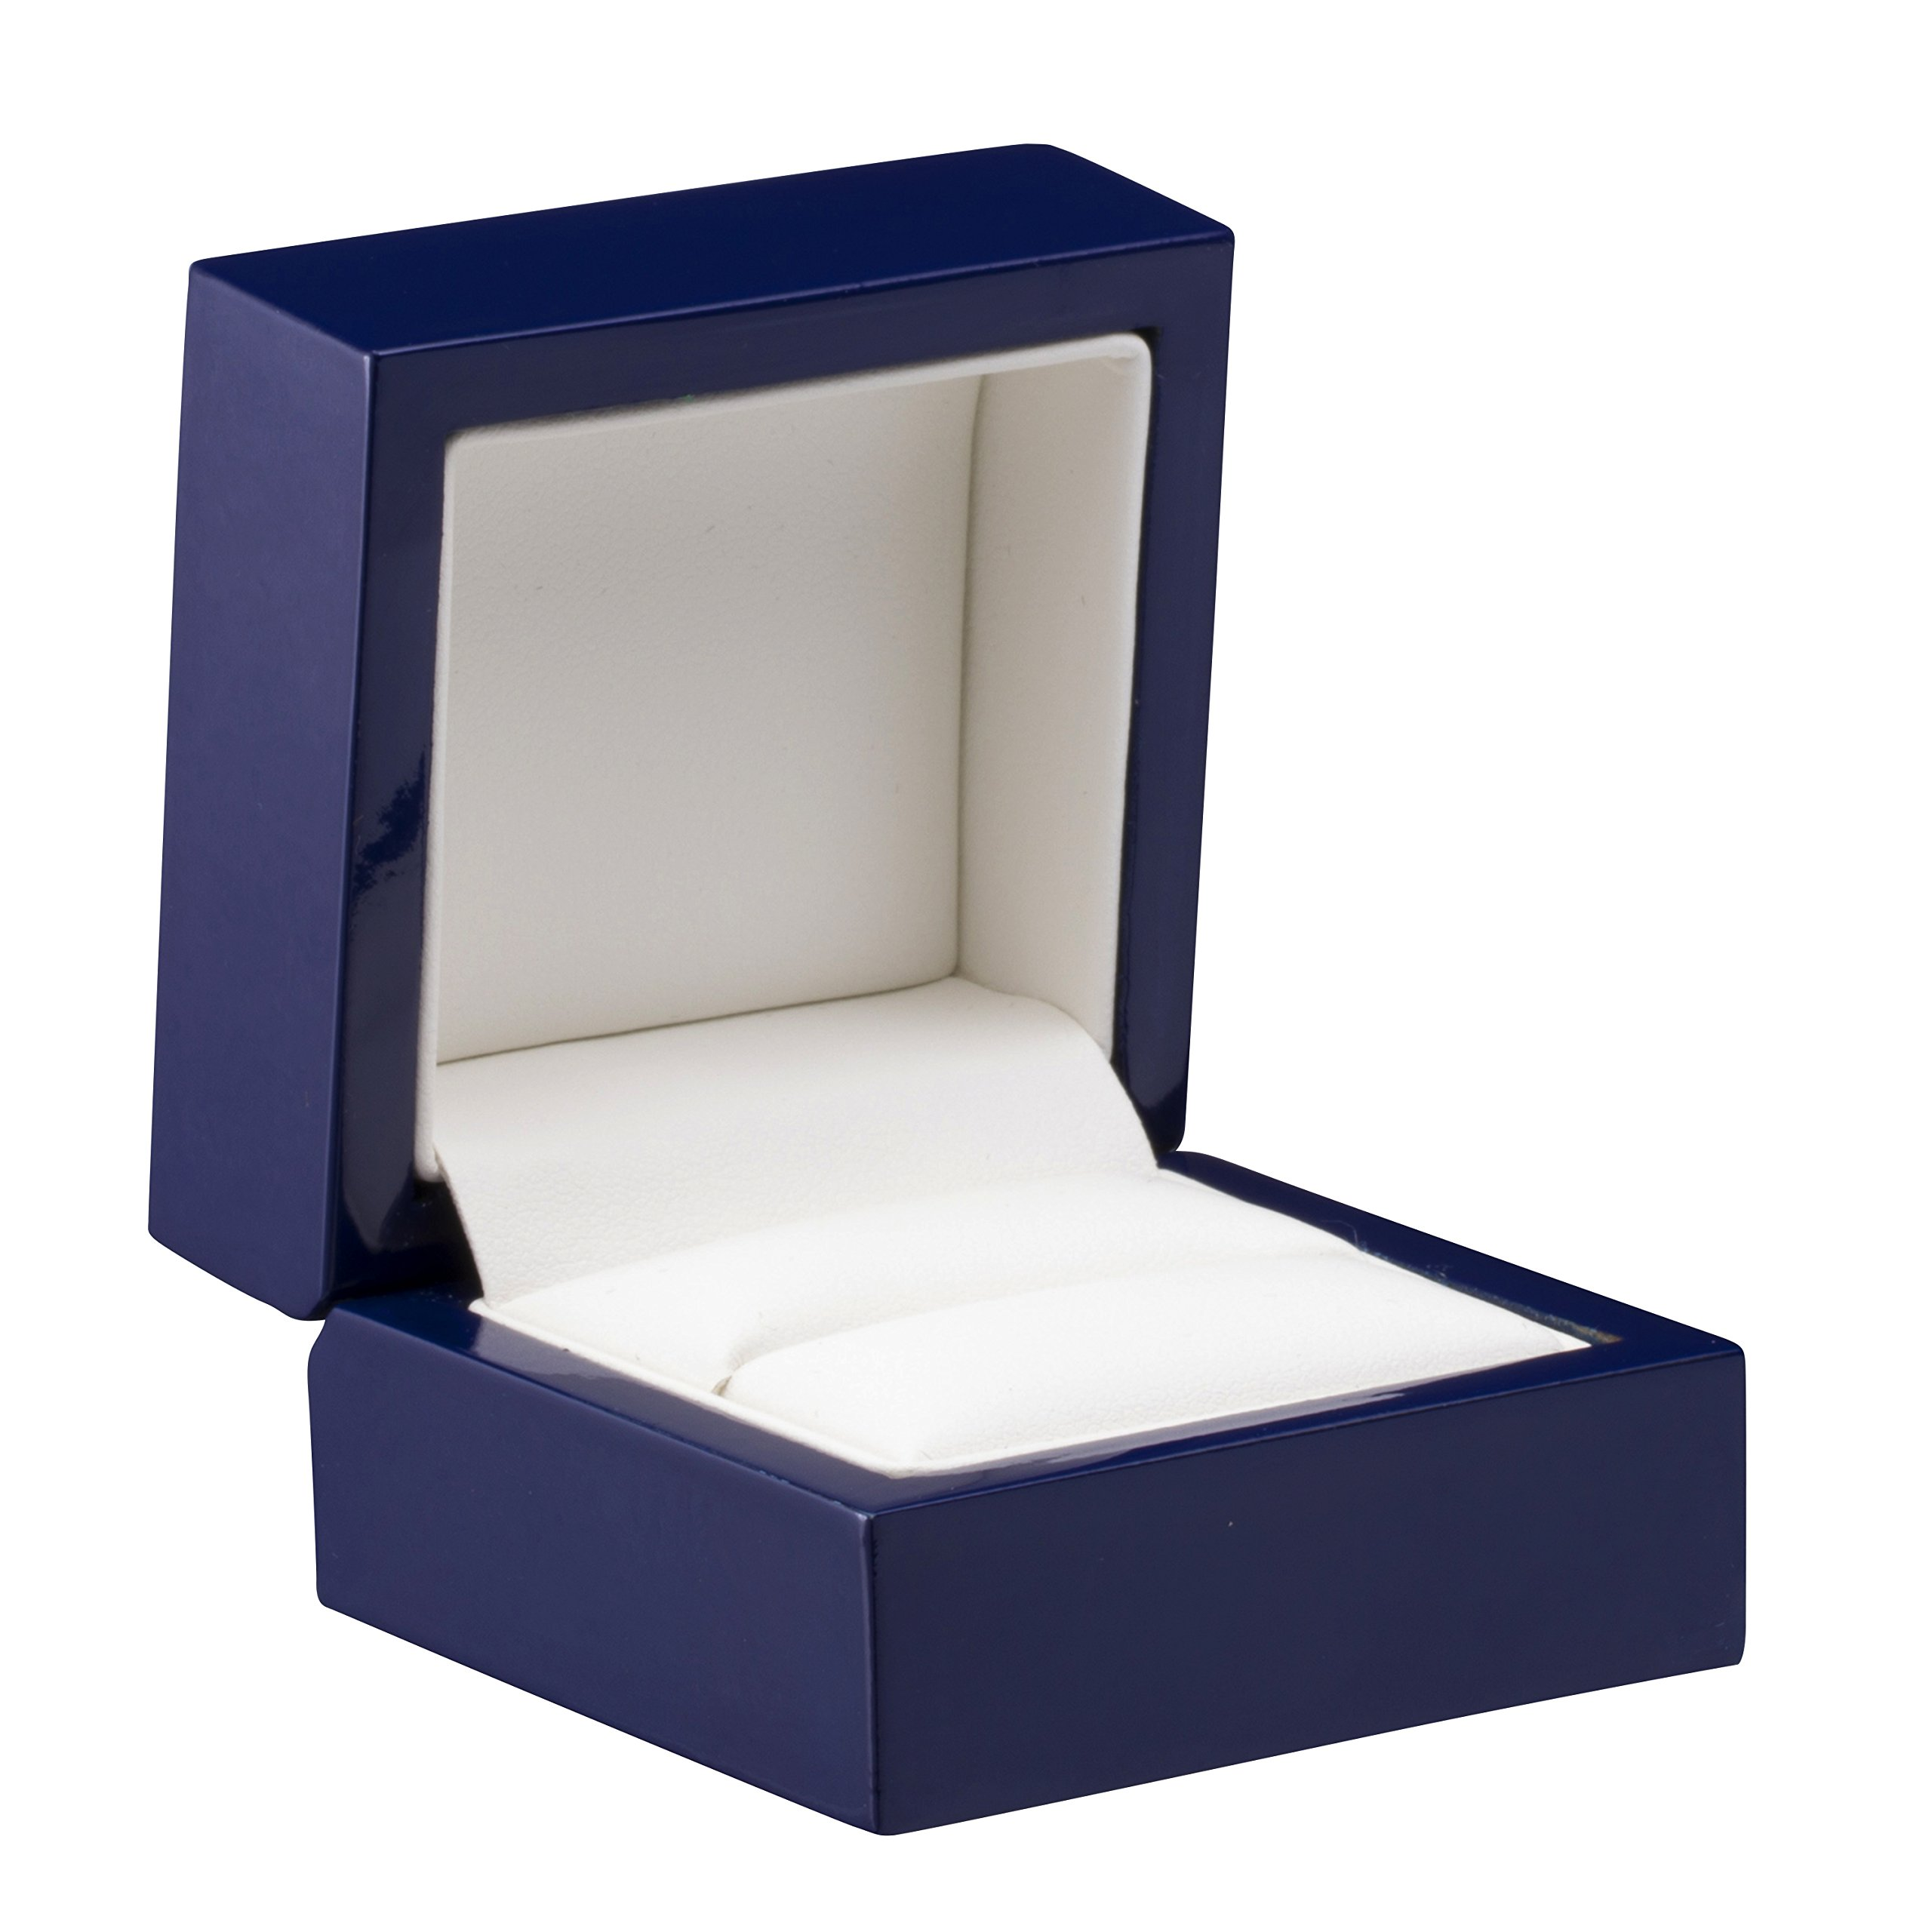 Allure Imperial Ring Box, Blue by Allure Pack (Image #1)